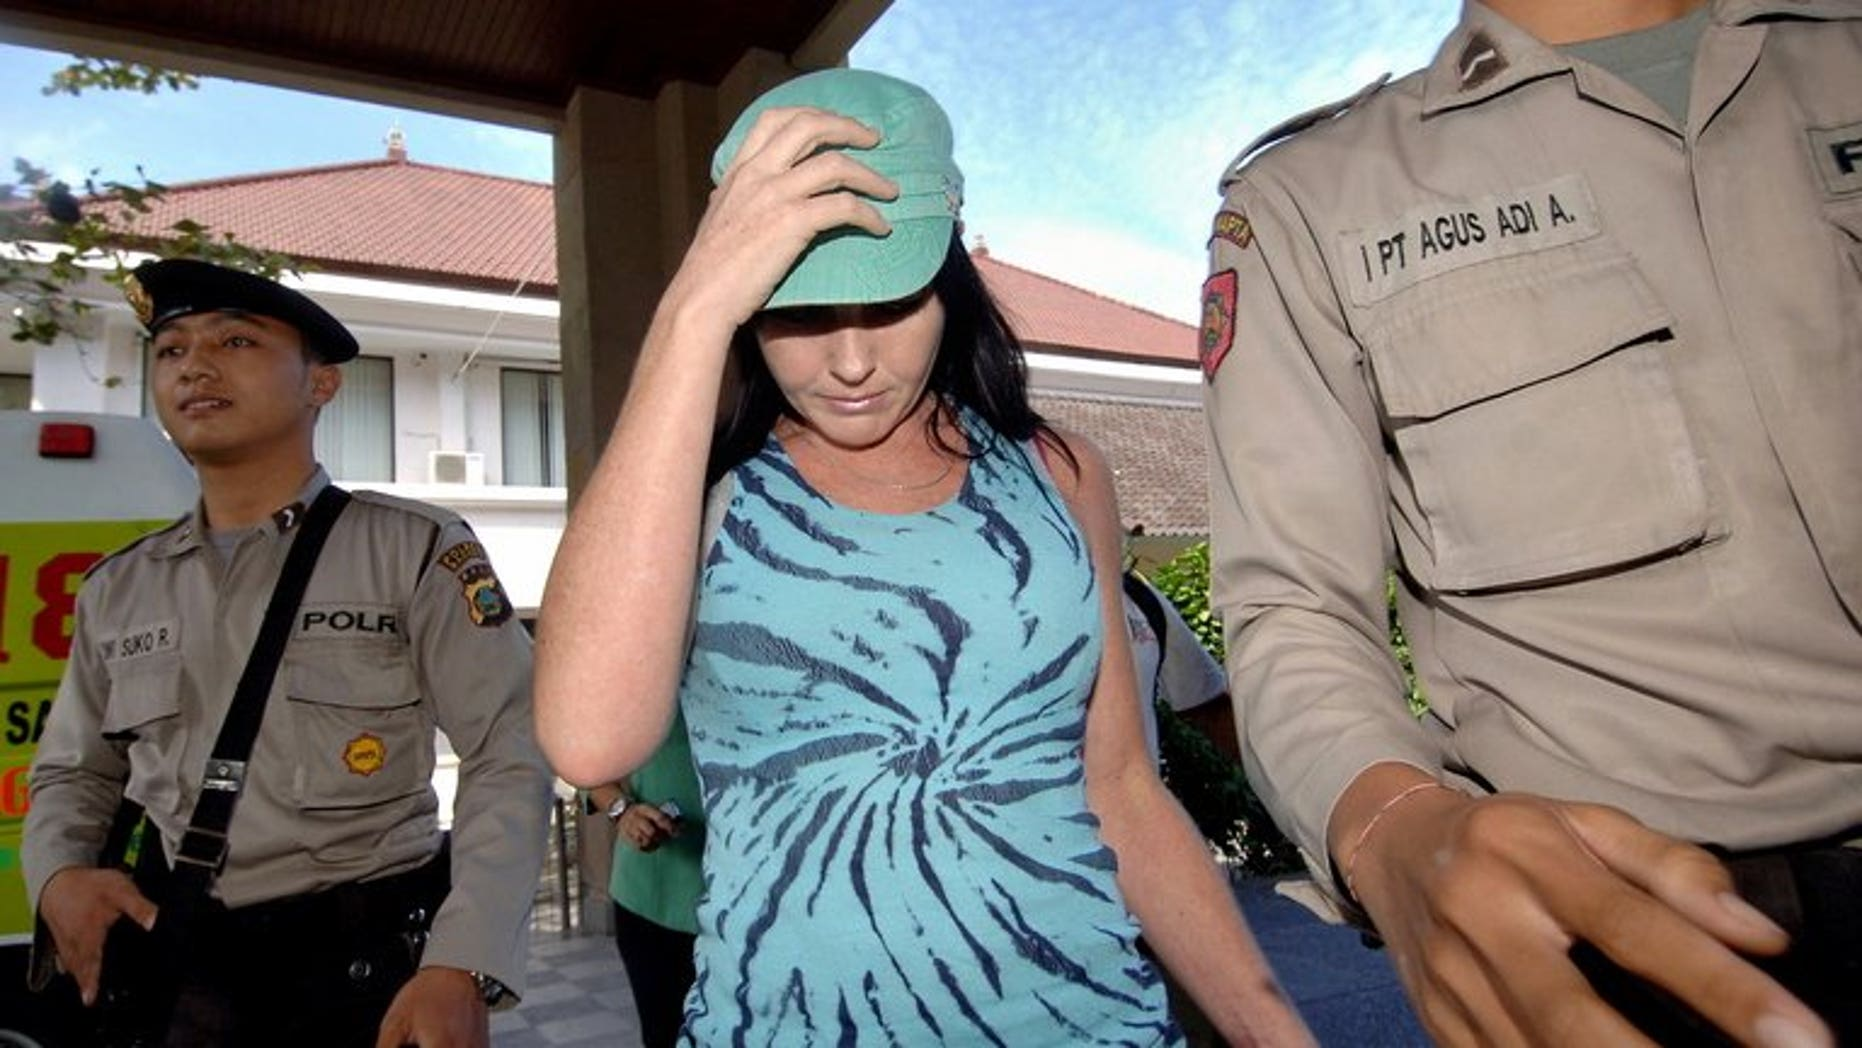 Convicted Australian drug trafficker Schapelle Corby (C) is escorted by two policemen in Denpasar on Bali island on July 2, 2008. Corby is one step closer to being freed from prison in Indonesia's Bali island after officials began preparing for her parole, her sister said Wednesday.